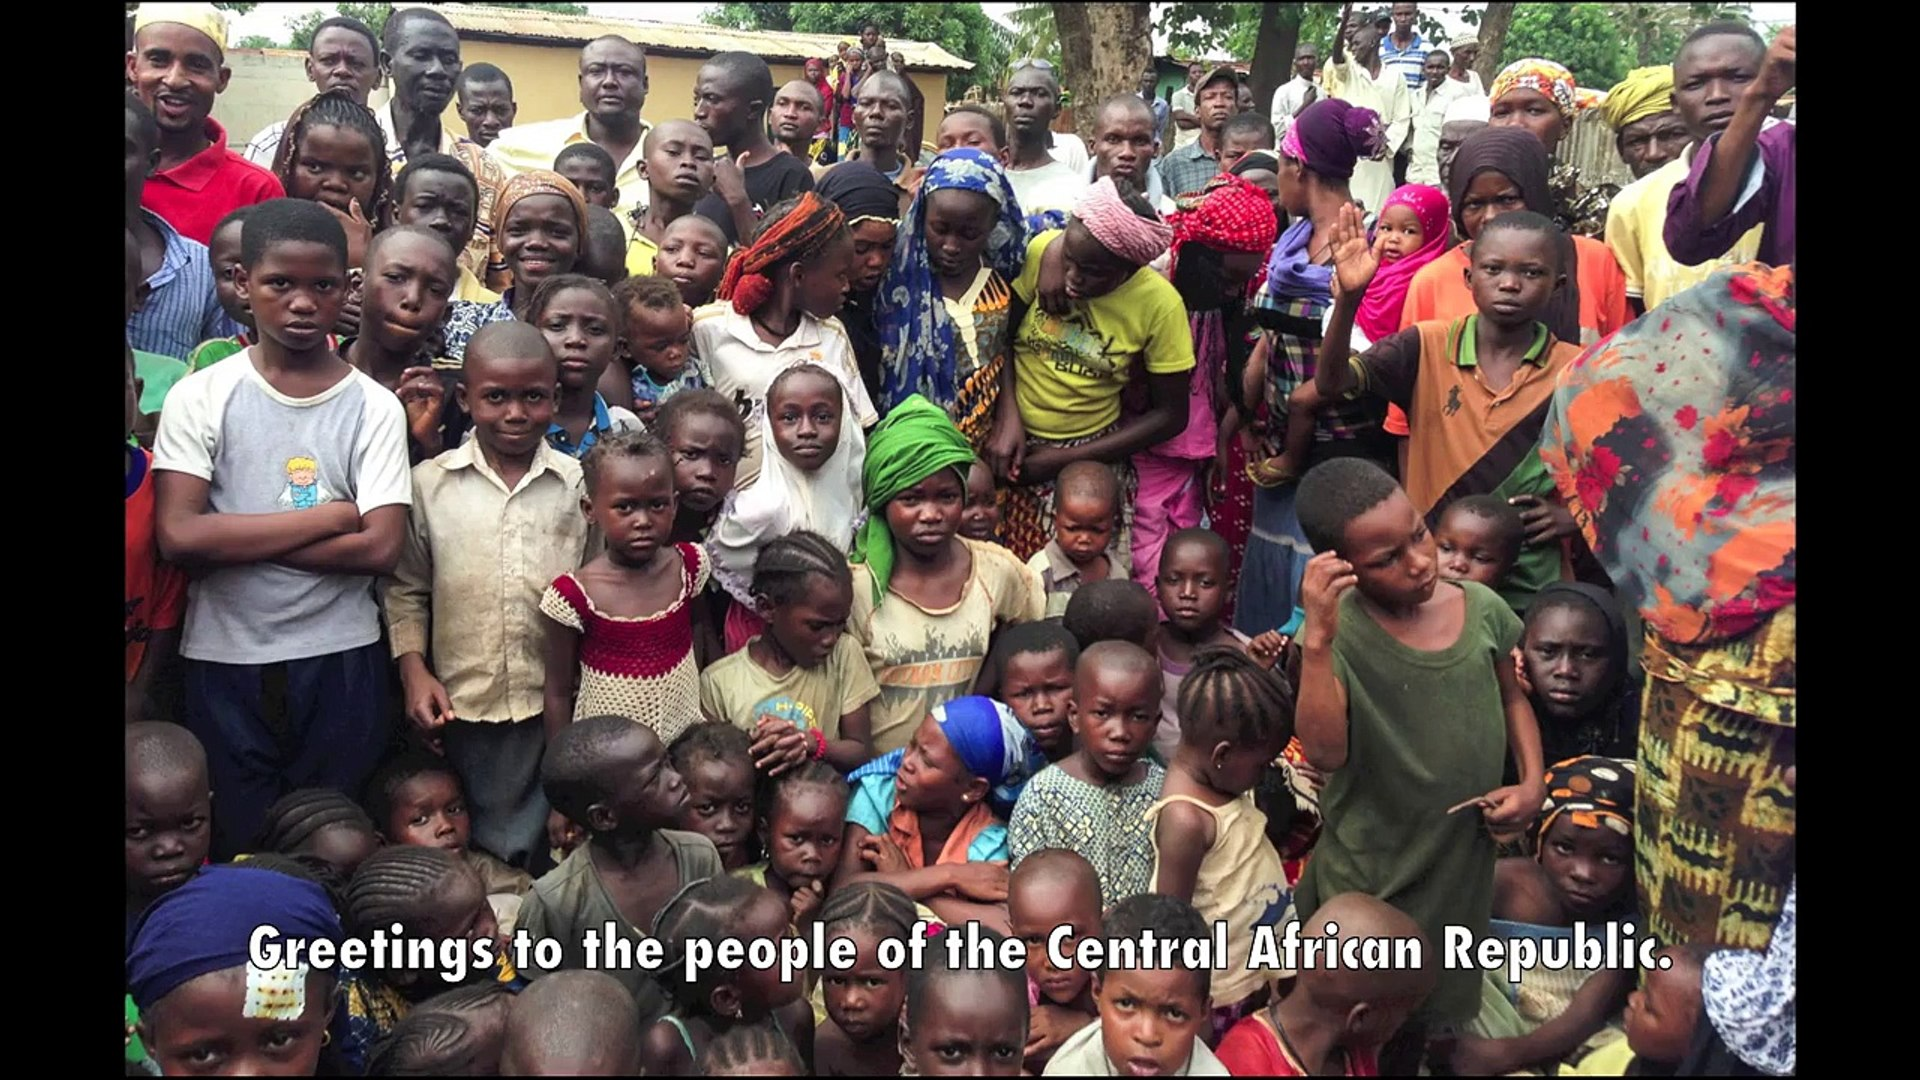 The Secretary-General's message to the people of the Central African Republic